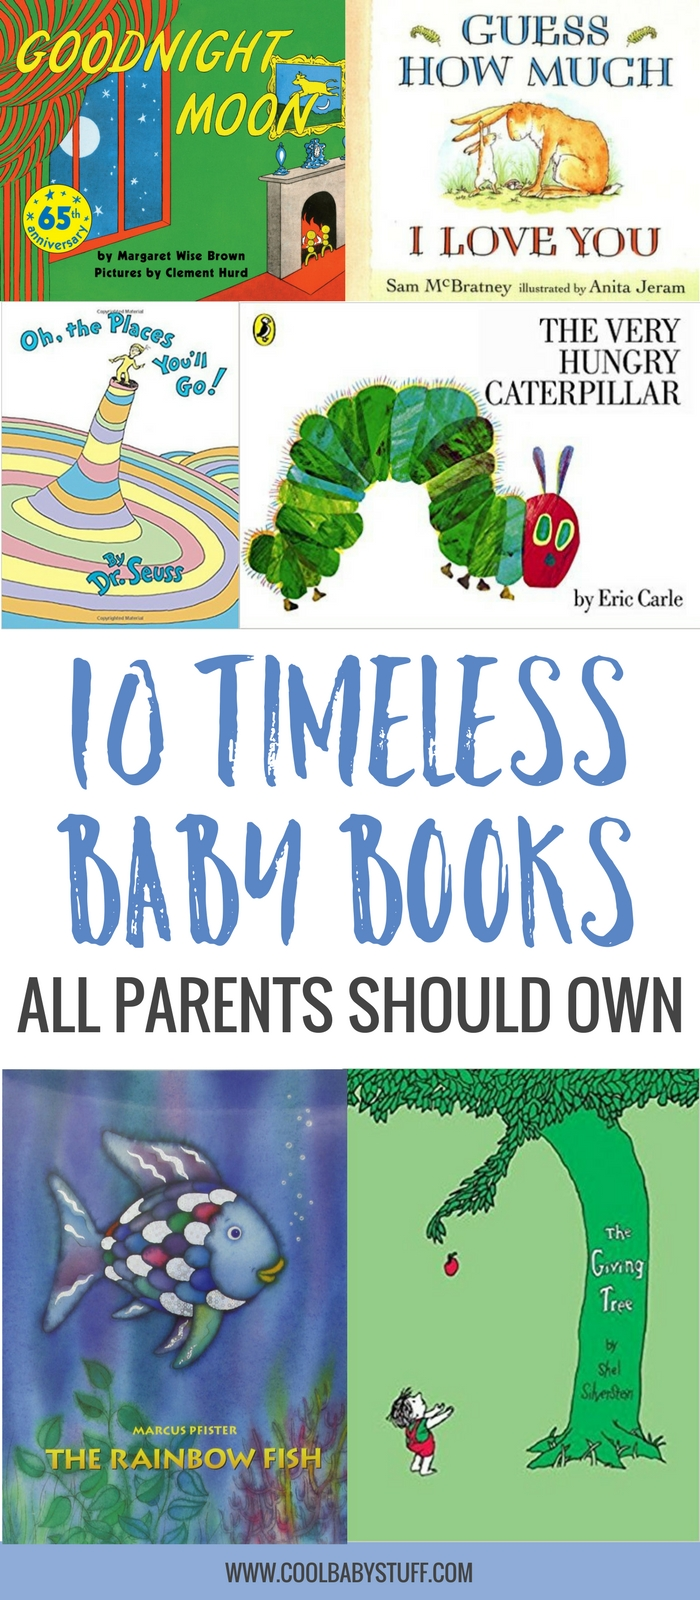 Reading to your child is so important as it helps develop phonic and reading skills early on. Not only that but it also allows for you to spend some quality time before putting your child to bed. There are so many books to choose from, but here are some timeless books that will last longer than just your first child.